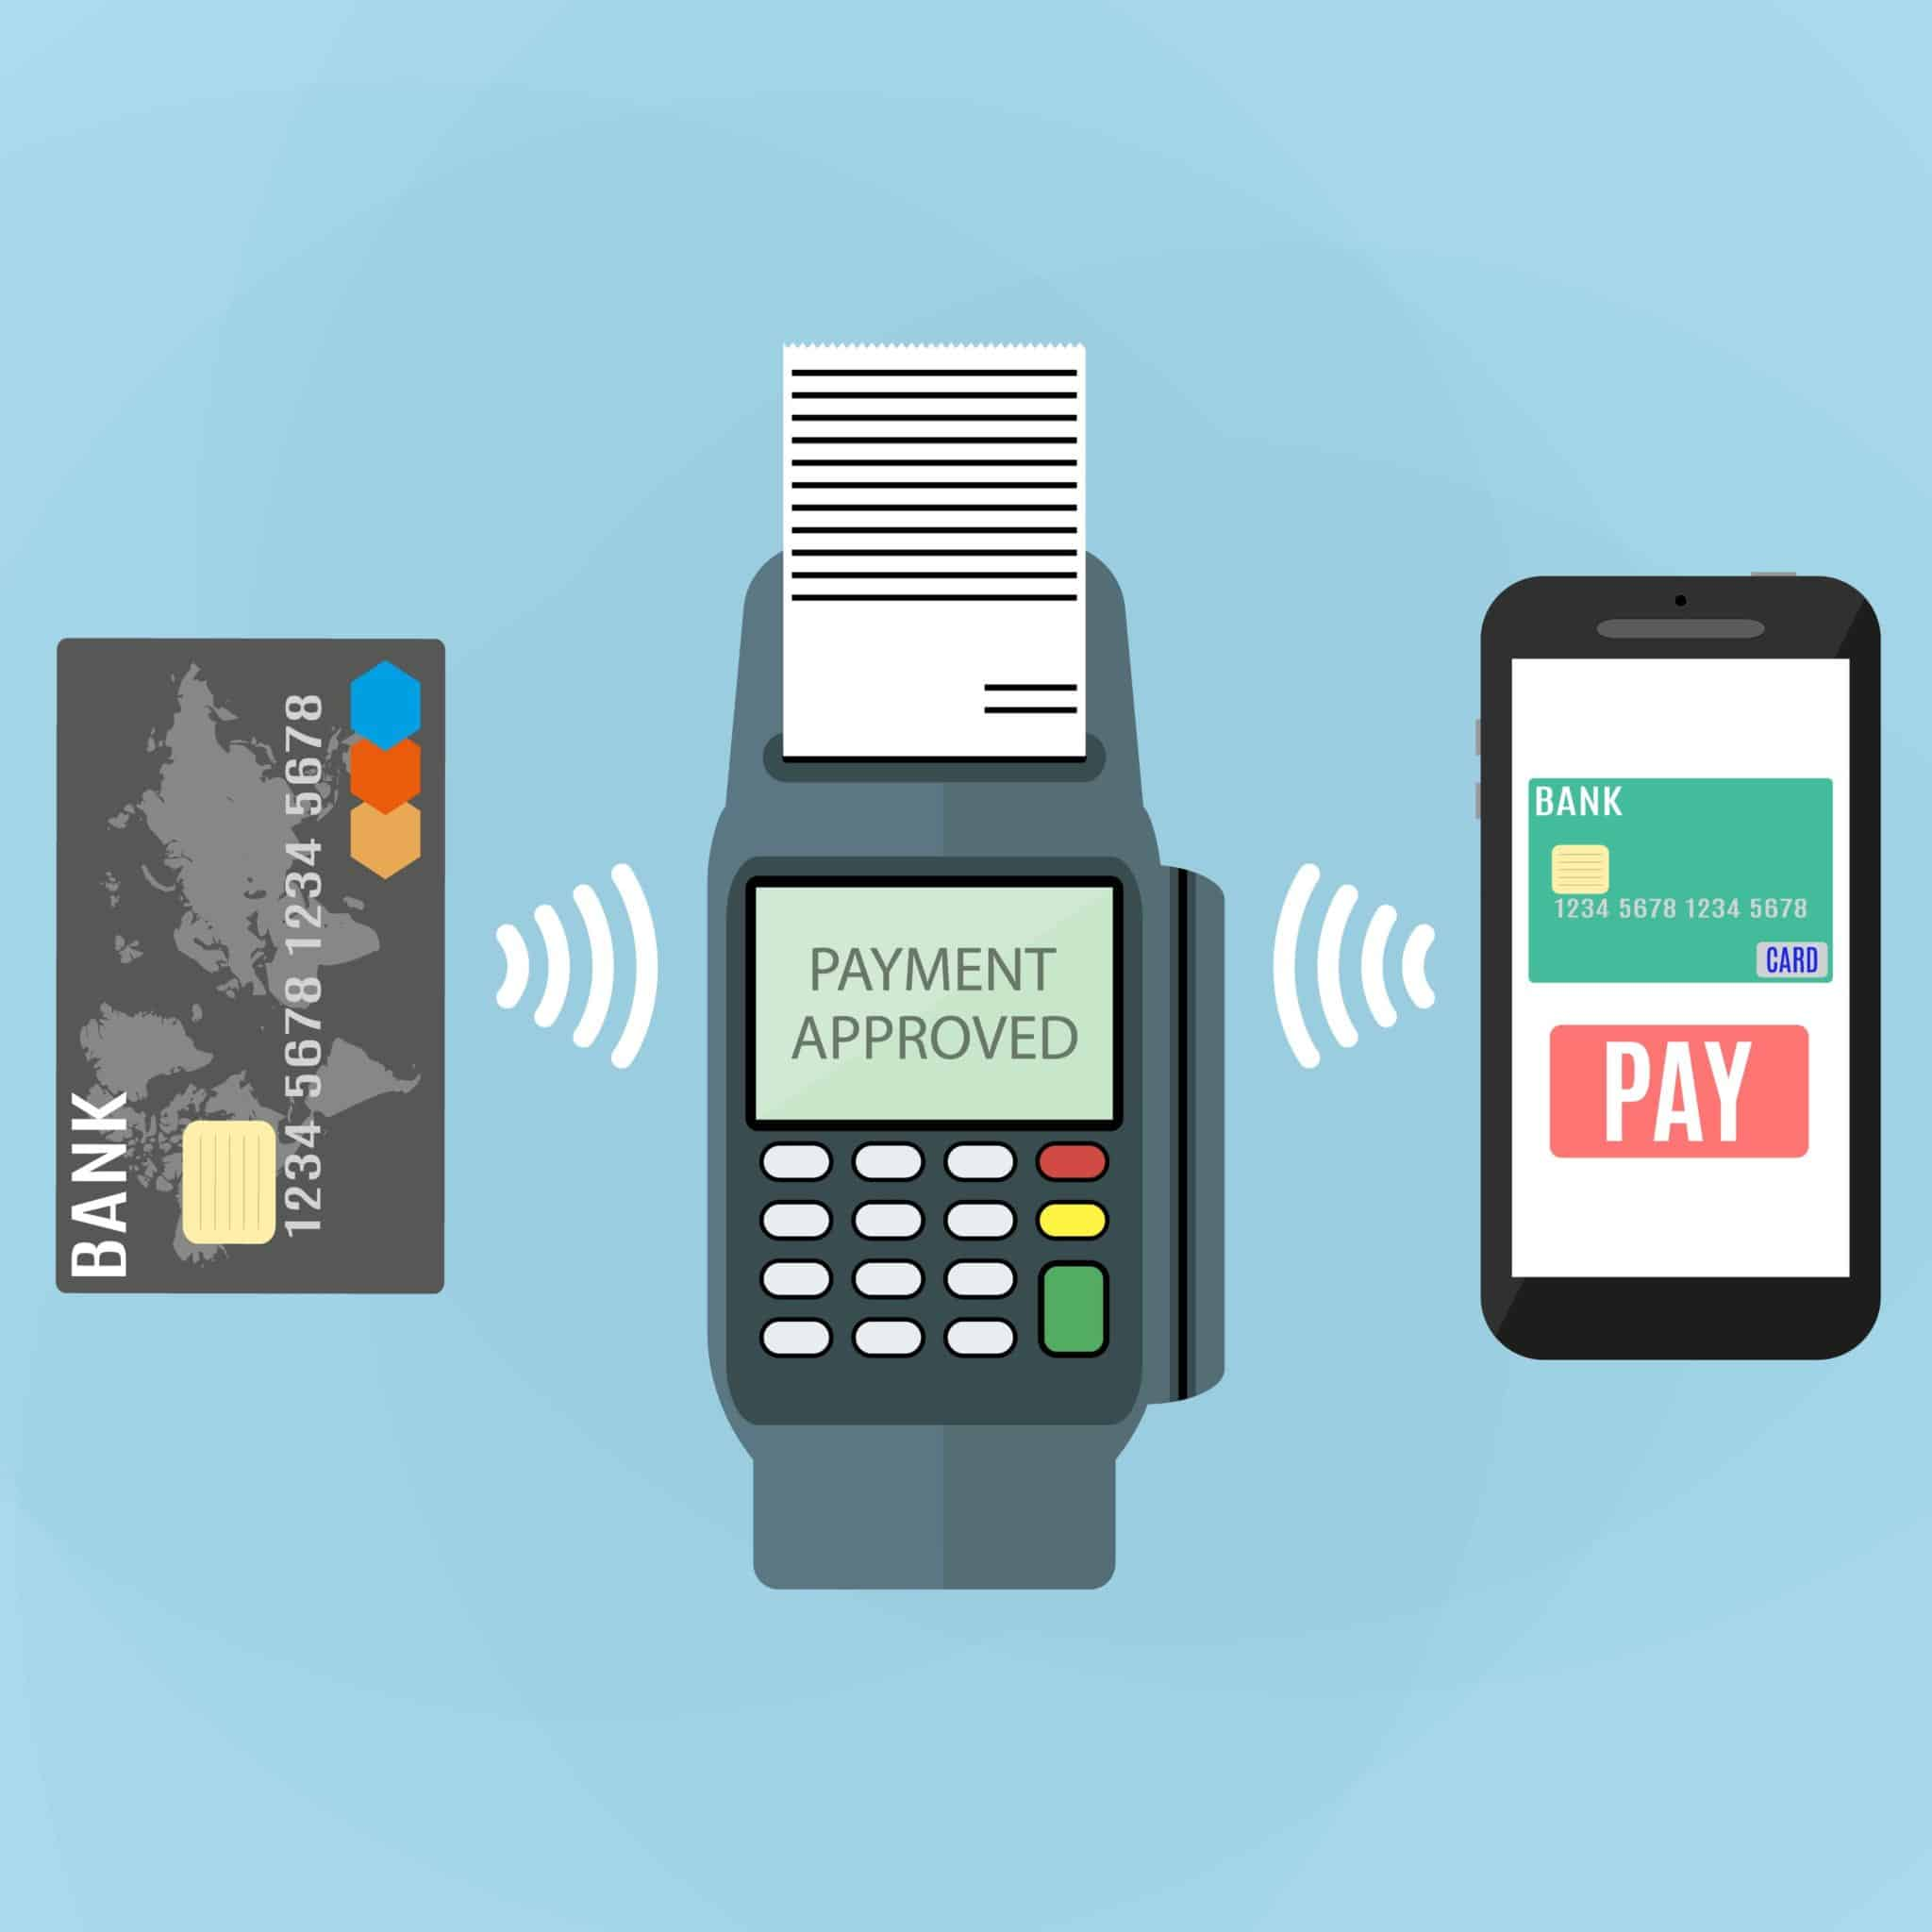 Pos terminal confirms the payment by smartphone and card. Vector illustration in flat design on blue background. nfc payments concept